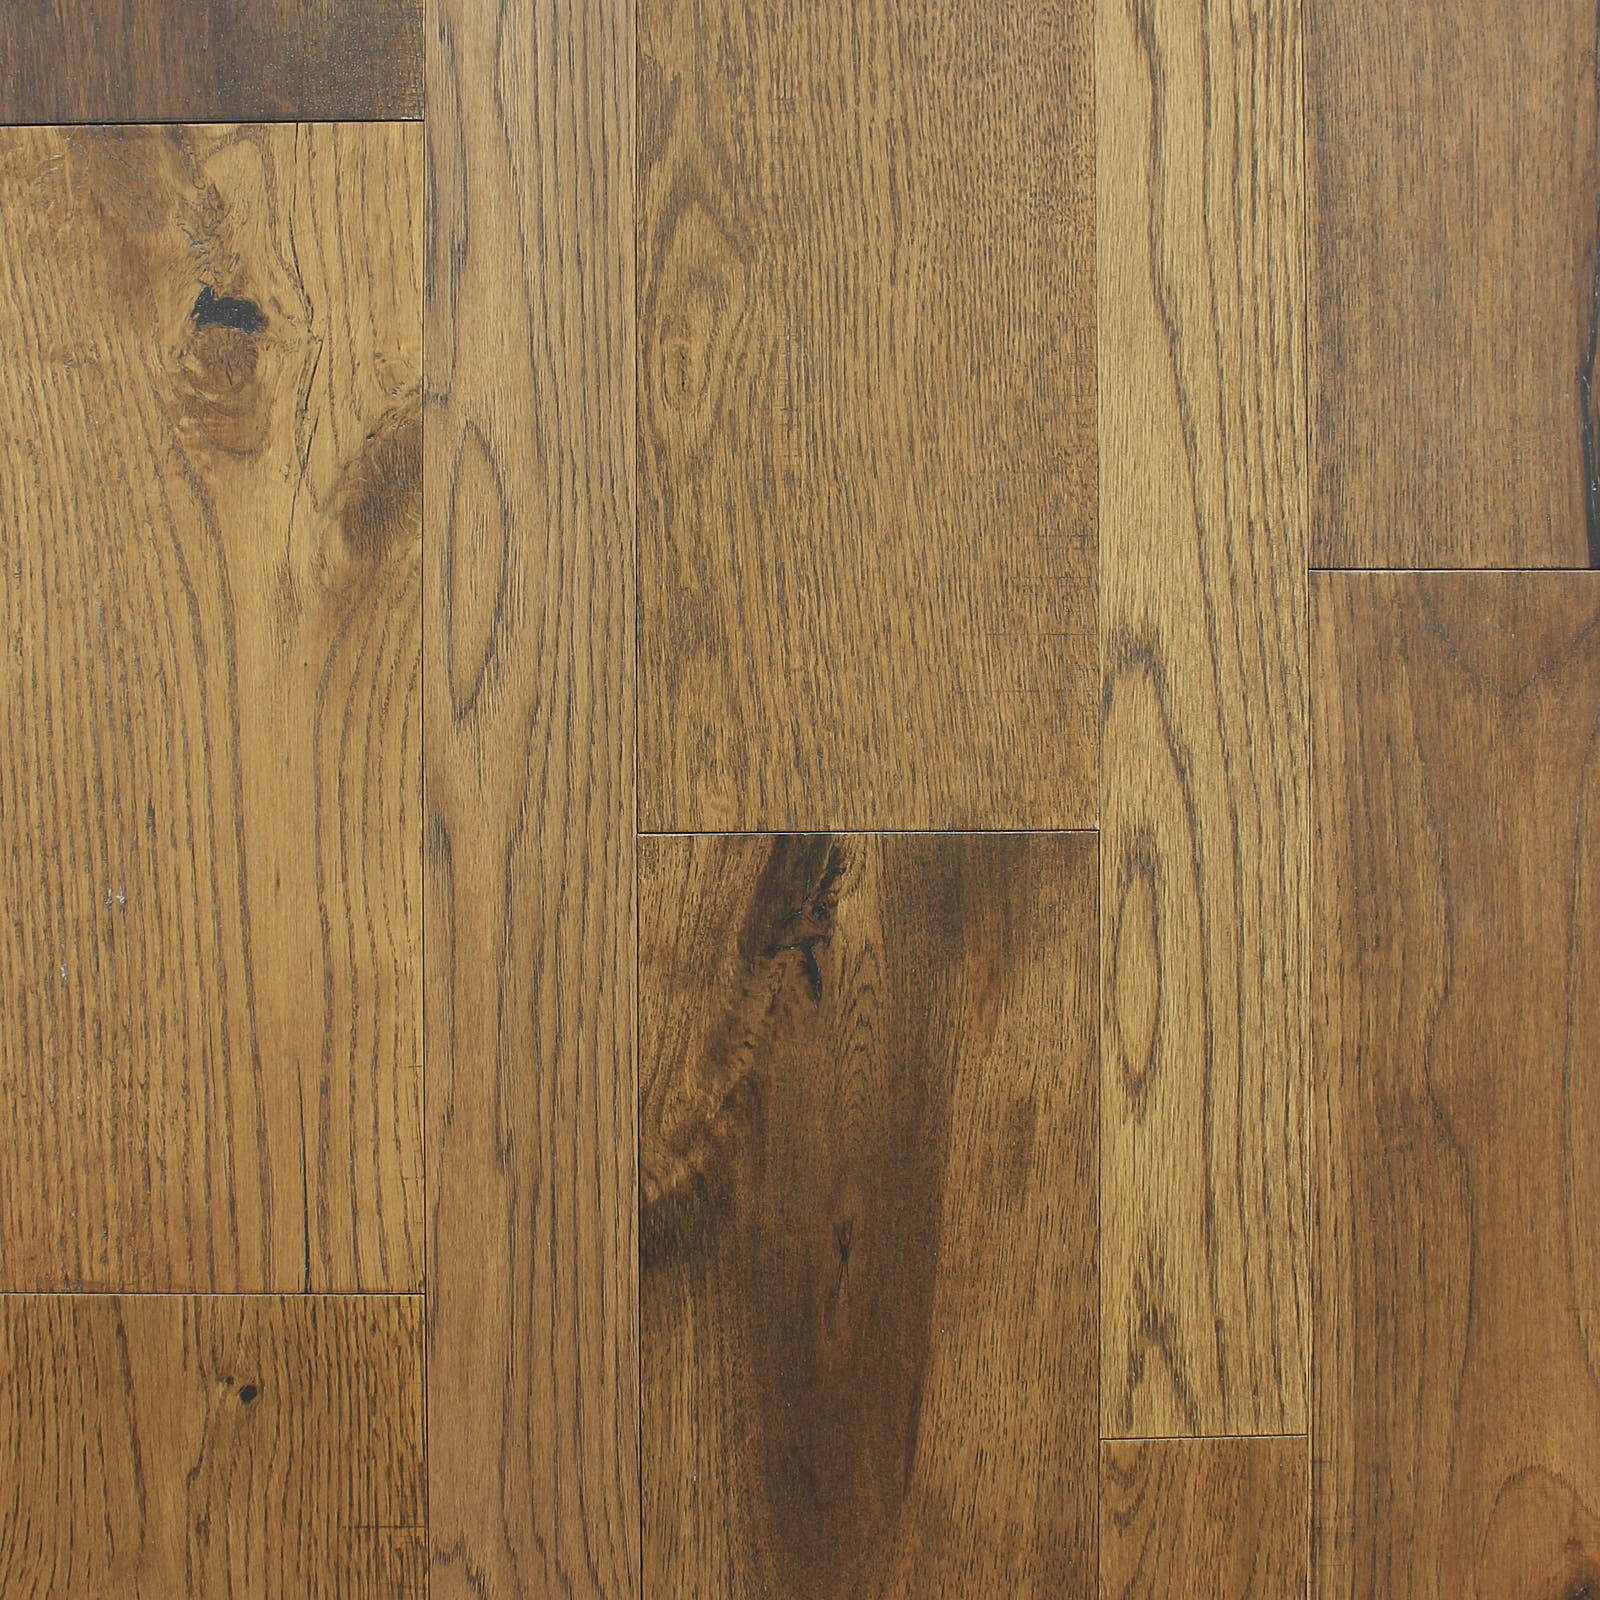 Calico Autumn Leaf Engineered Hardwood Flooring